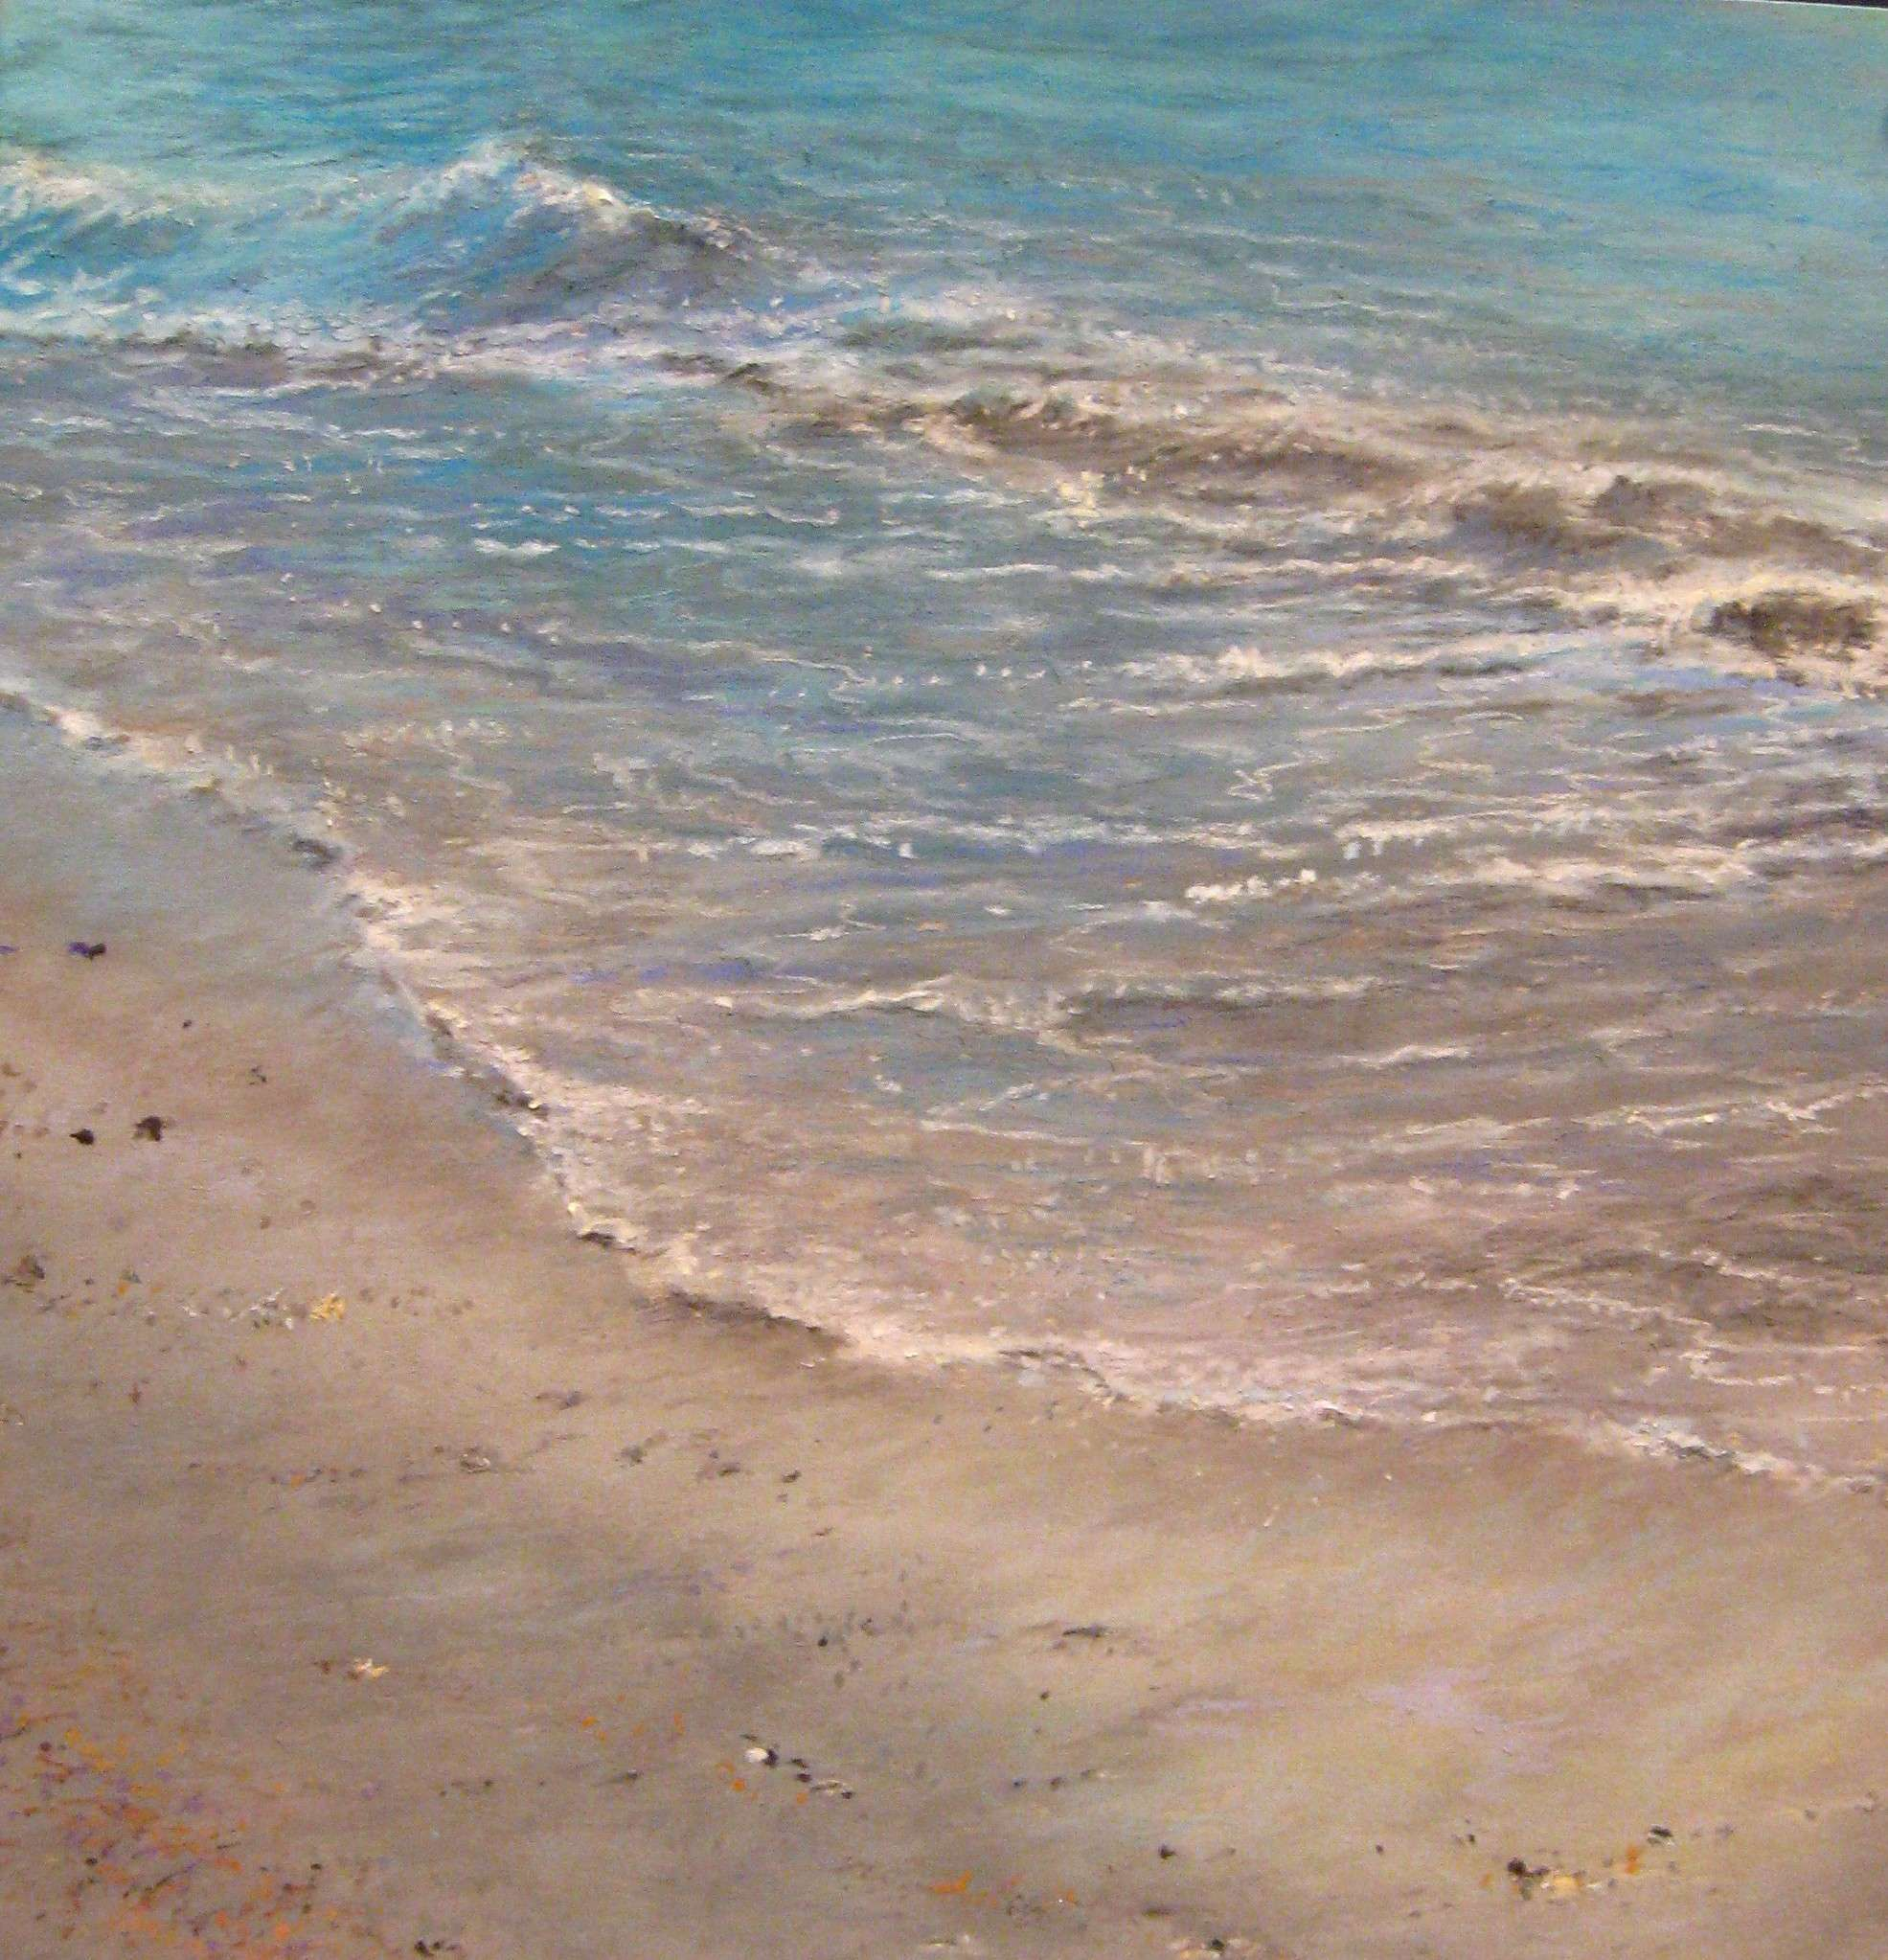 Karen Baker. Seaside#6